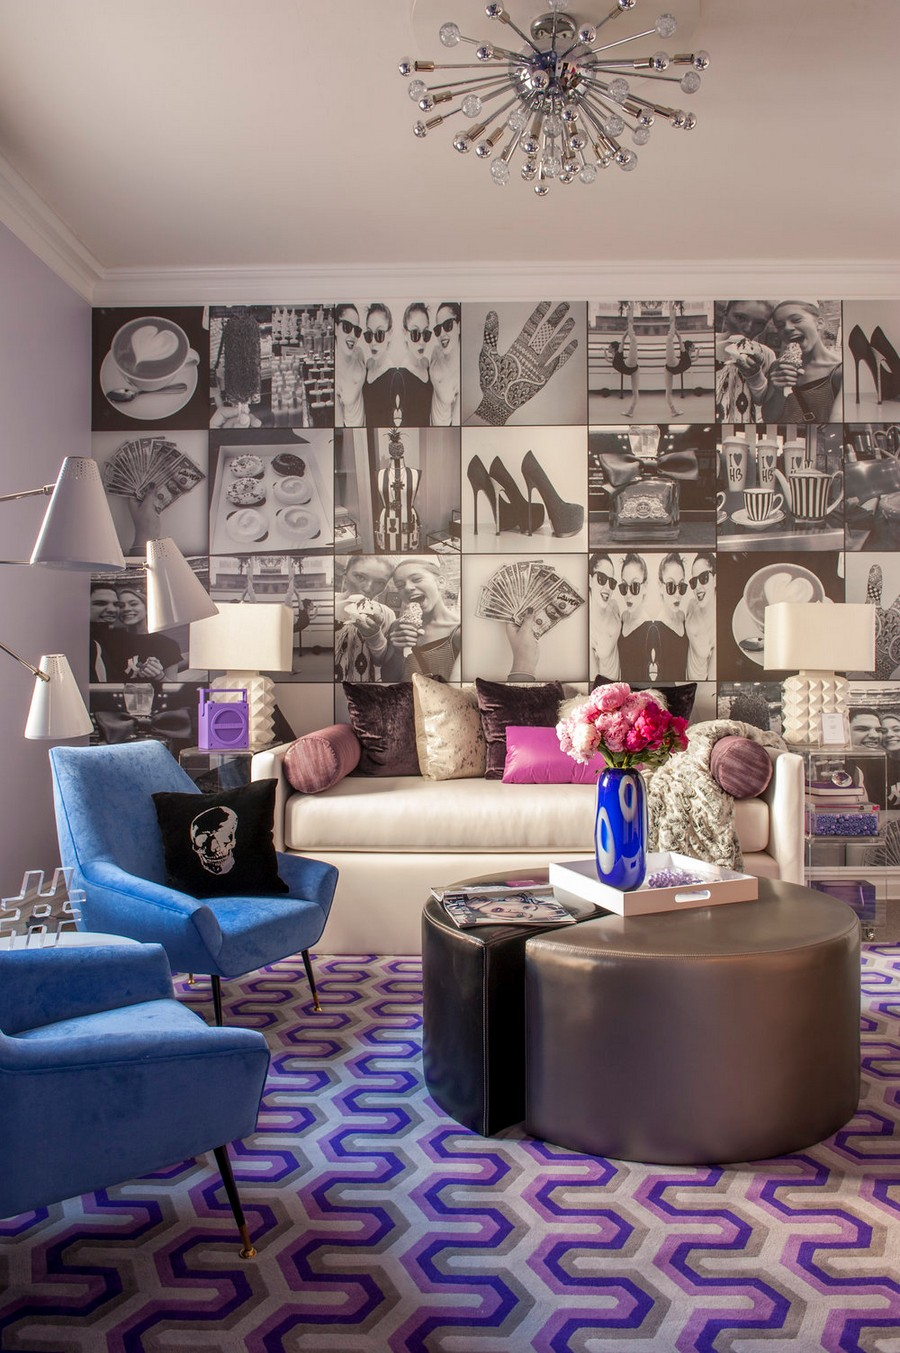 Be Inspired by Amie Weitzman's Fabulous Luxury Design Interiors amie weitzman Be Inspired by Amie Weitzman's Fabulous Luxury Design Interiors Be Inspired by Amie Weitzmans Fabulous Luxury Design Interiors 2